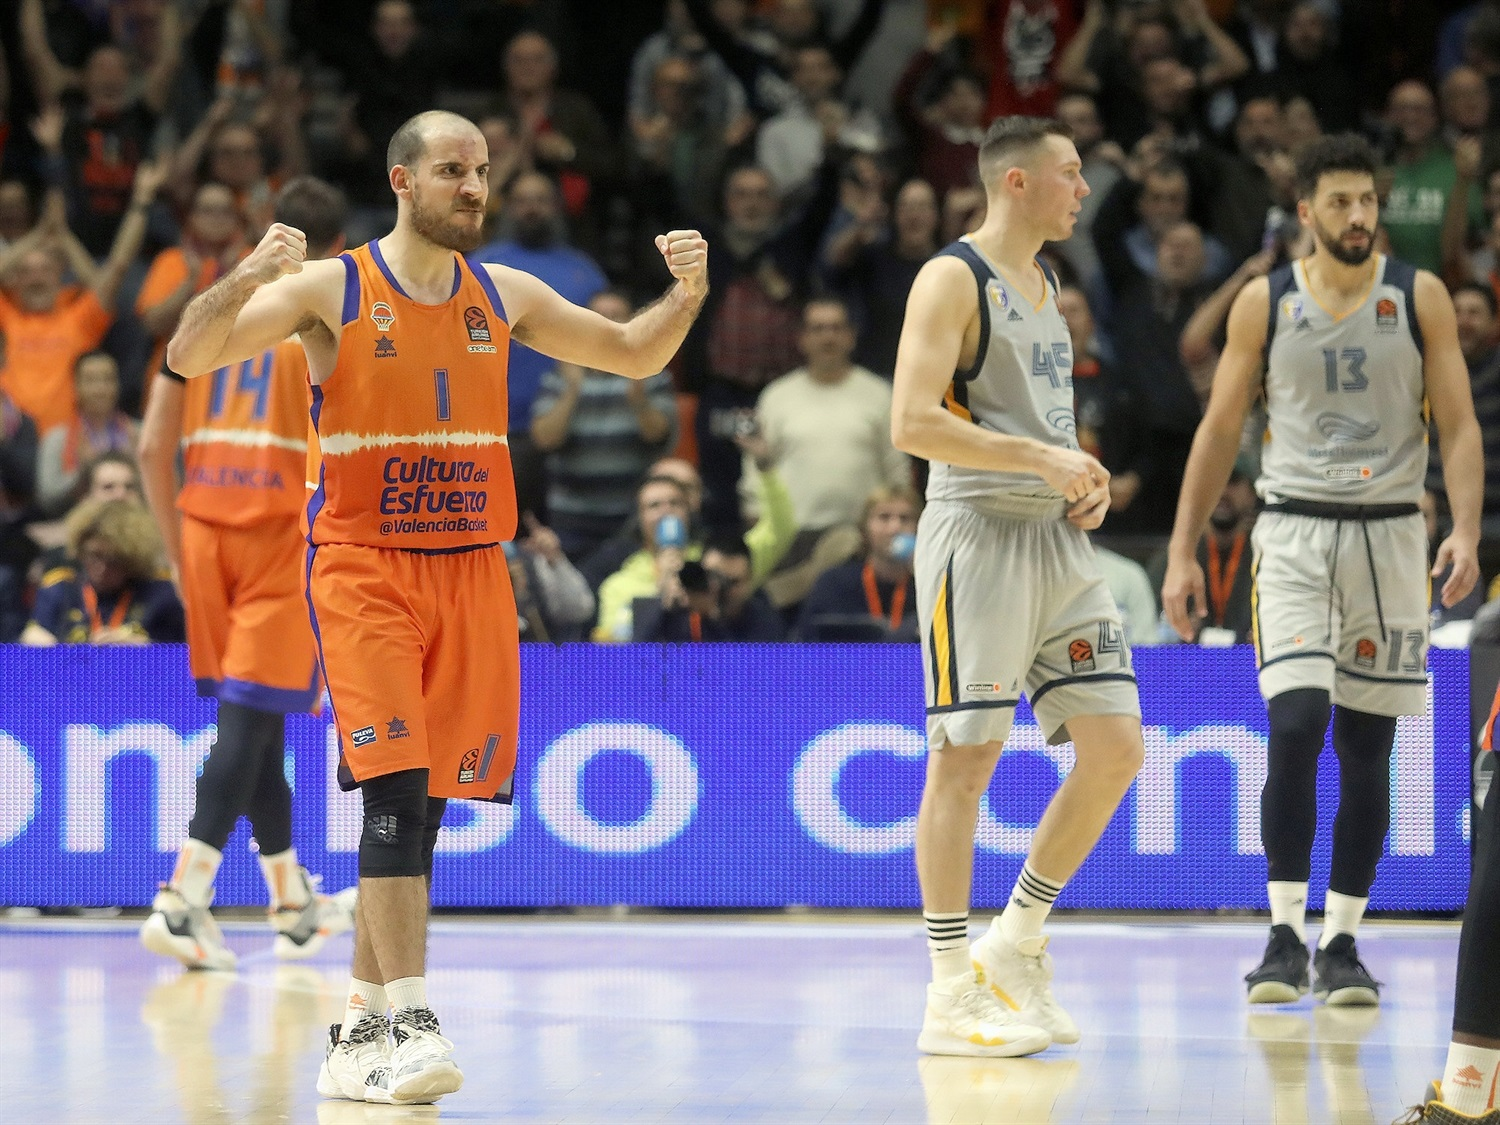 Quino Colom celebrates - Valencia Basket - EB19